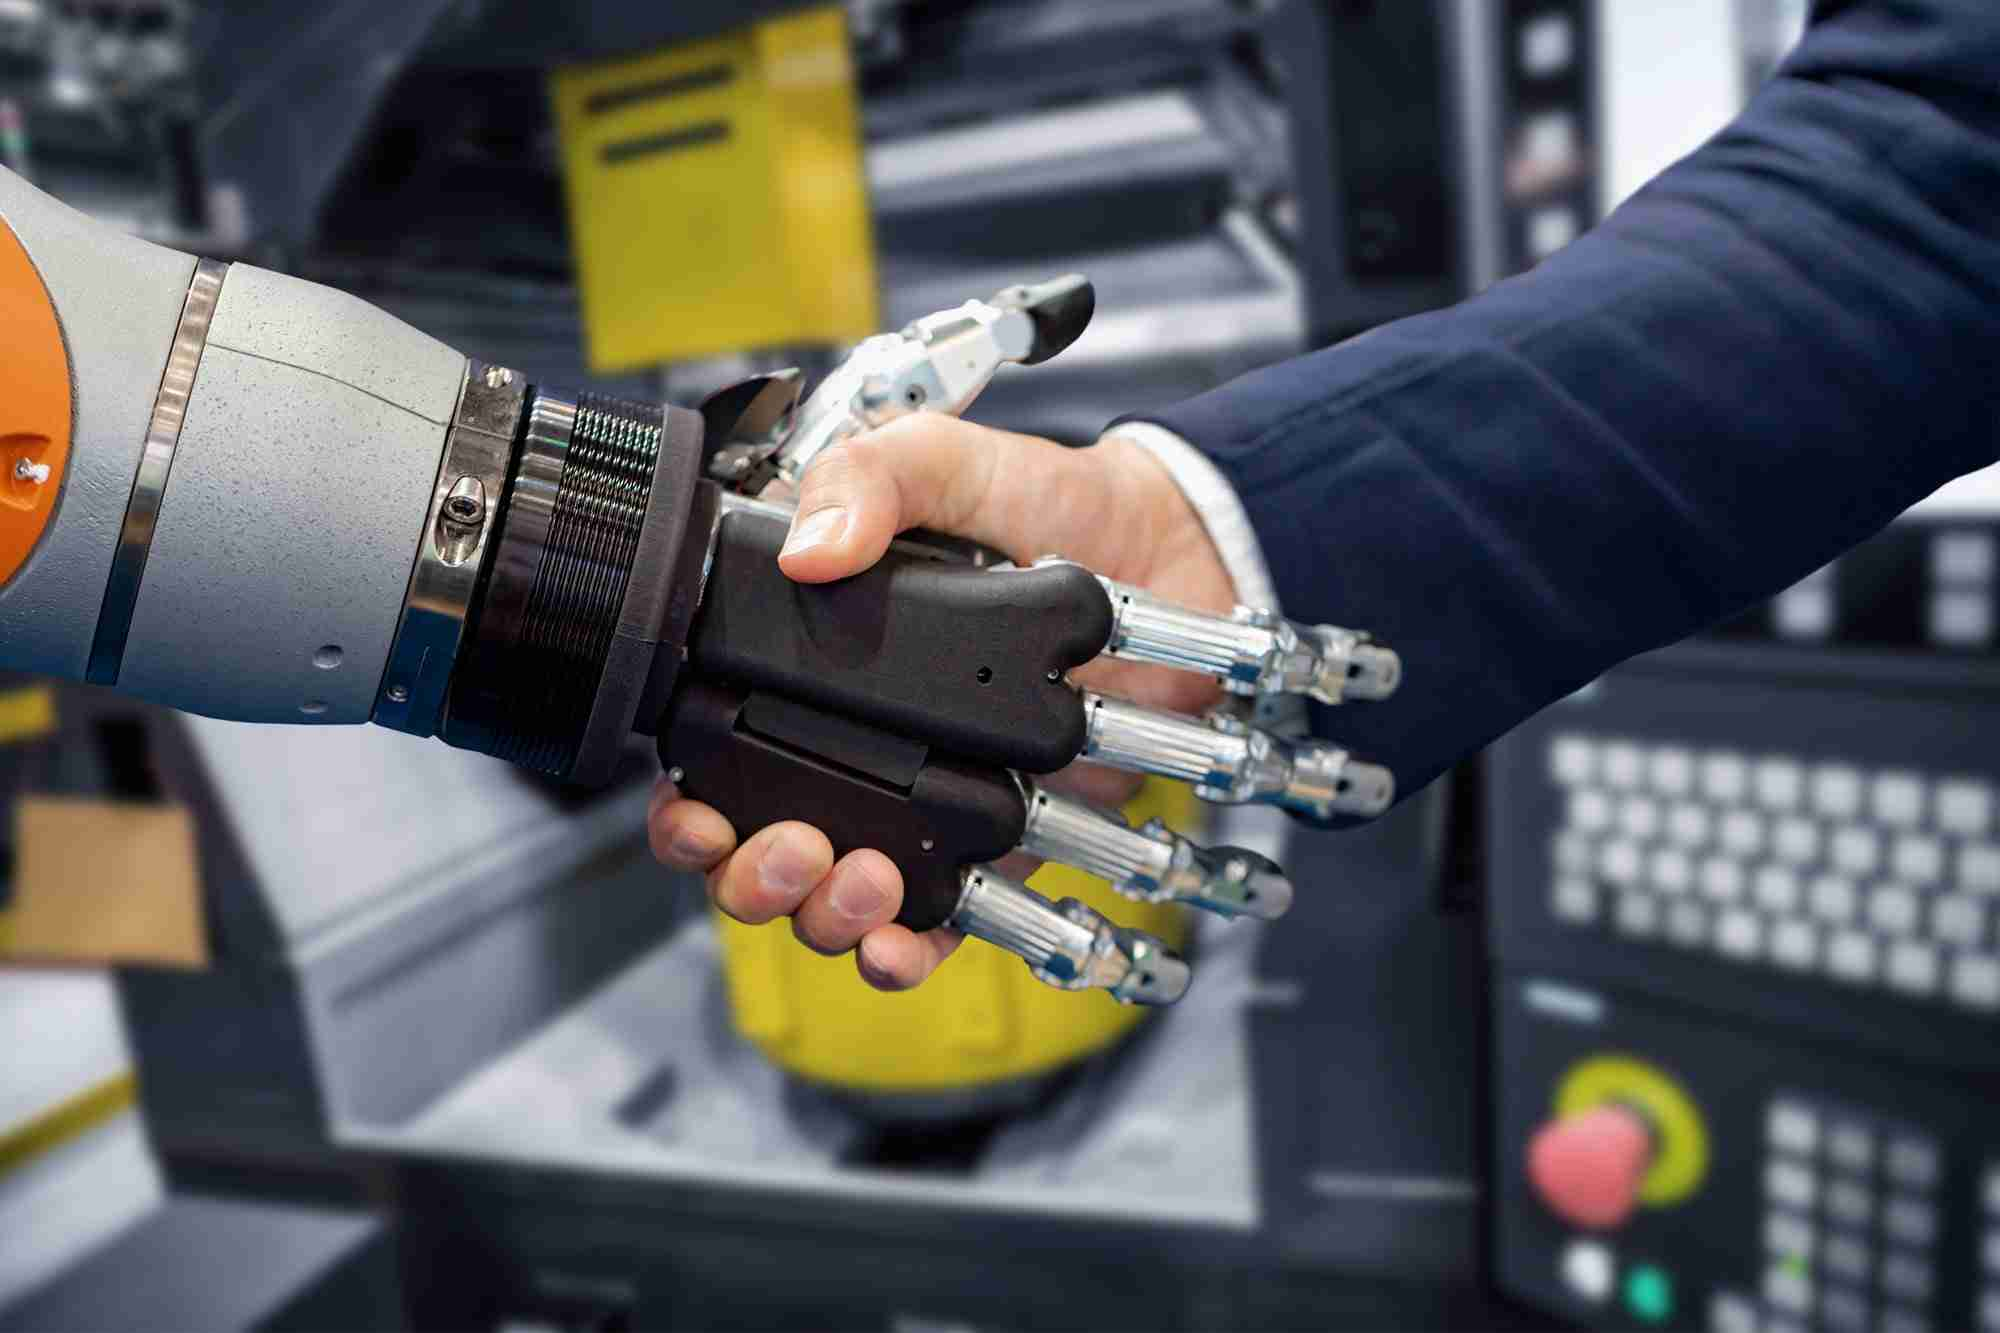 Hand of a businessman shaking hands with a Android robot.